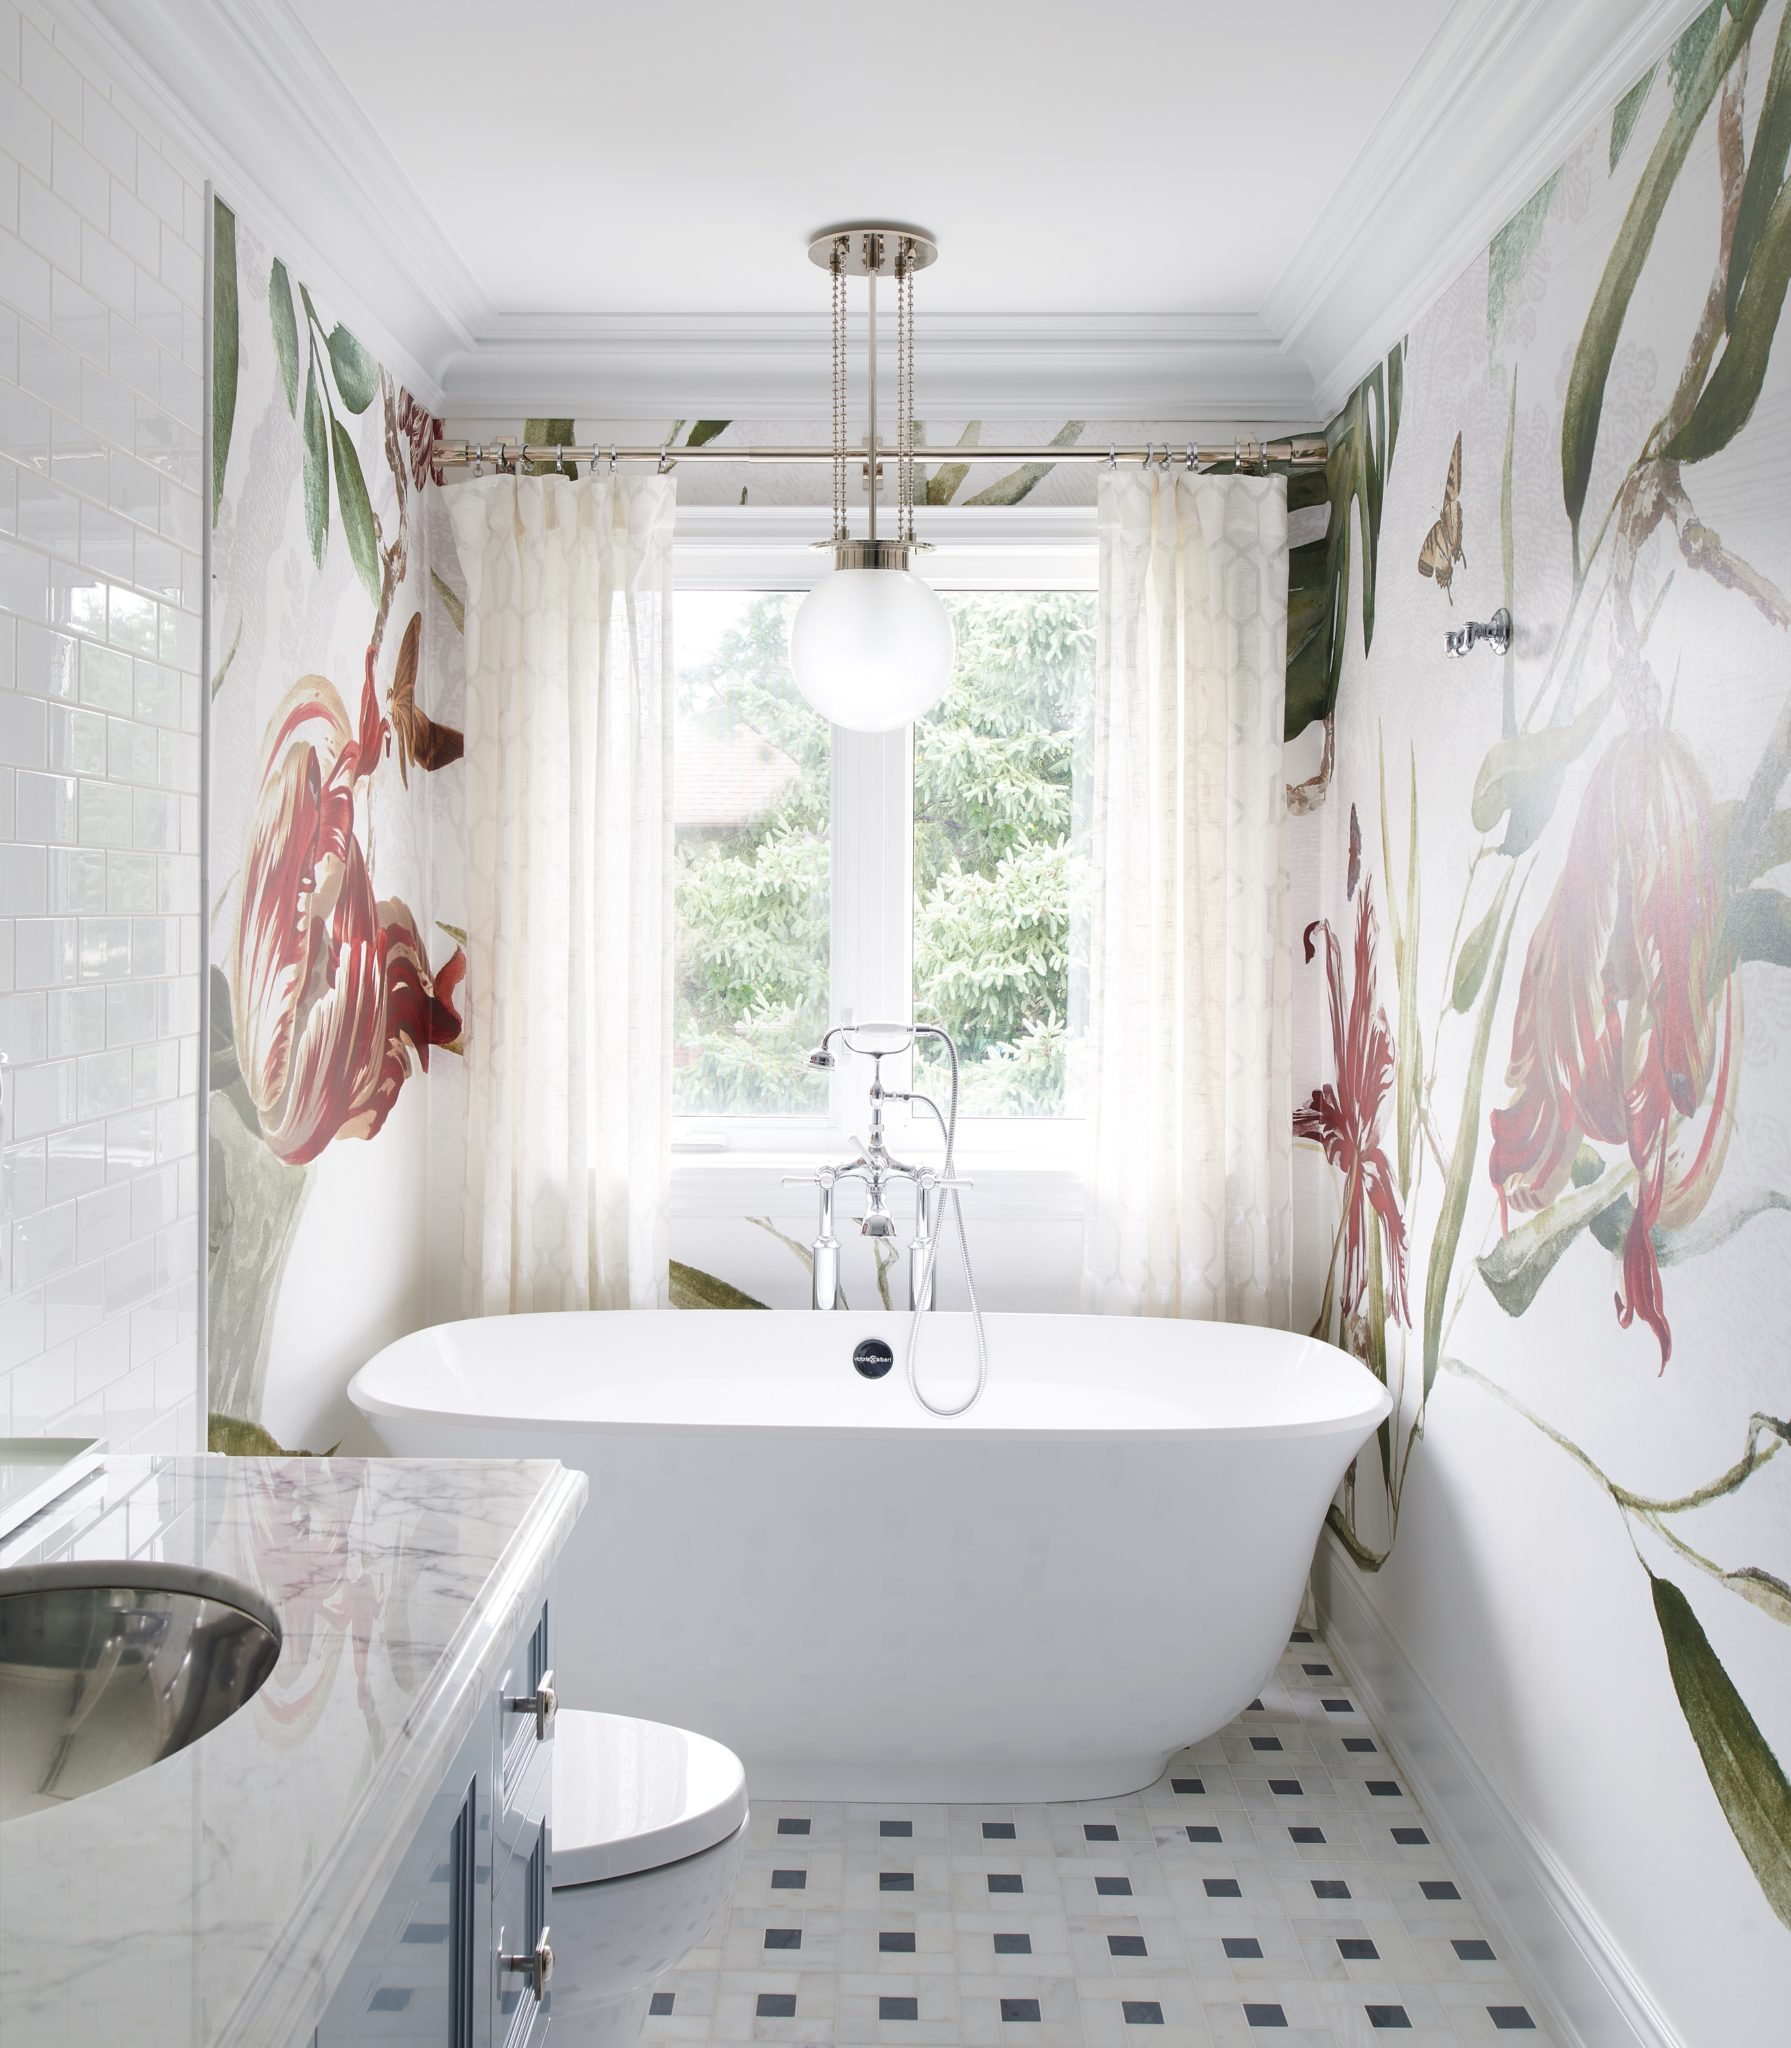 "Try Out Dramatic Drapery in the Bathroom   In the bathroom, dramatic, floor-length drapery can shut out the outside world when privacy is necessary, and open up to all incoming light when it's not. ""I love designing window treatments for those bathrooms with large windows and lots of daylight,"" says Svetlana Tryaskina, owner of Estee Design in Toronto. ""If space allows, I do floor-to-ceiling panels, using sheer linen or cotton fabrics, that work best in humid conditions. Adding a delicate trim to the panels always adds a luxurious feel to space."""